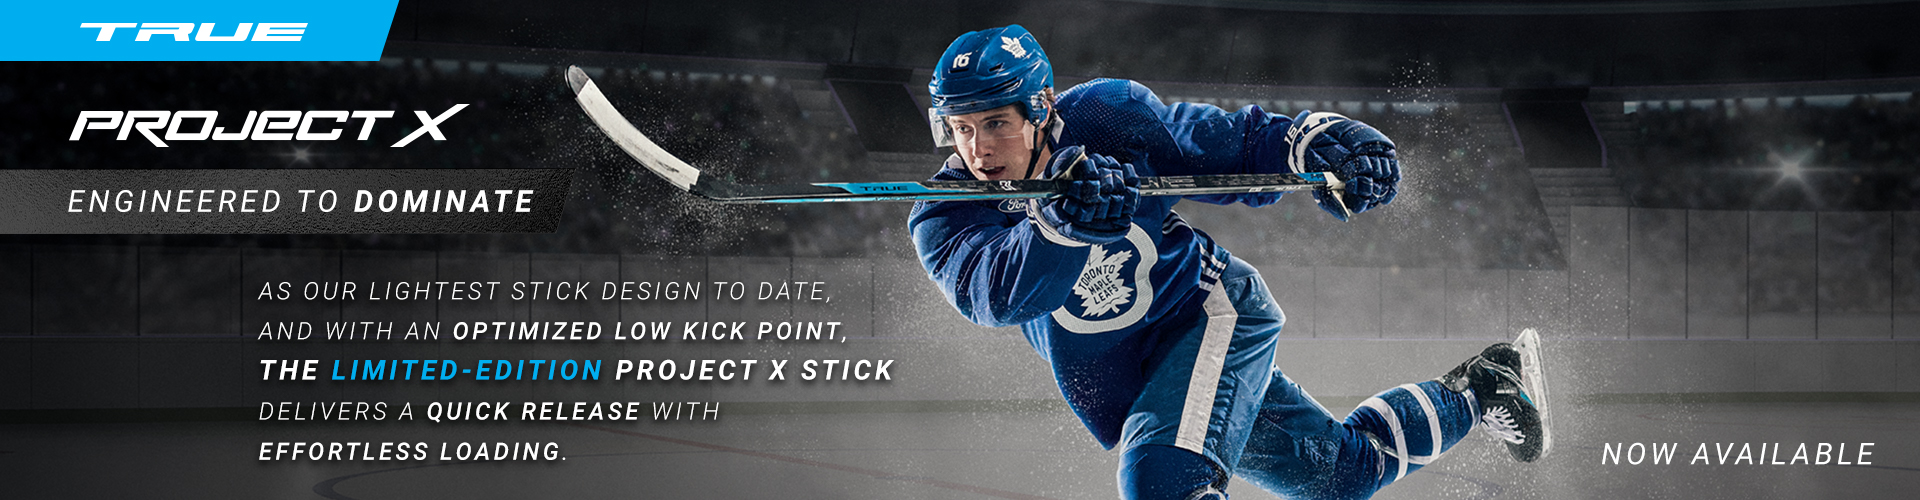 Get Back To Hockey & Shop the All-New TRUE Hockey Project X Sticks, Offering The Best Value For your Game. Let's Find What Fits Your Game This Season At Source For Sports.